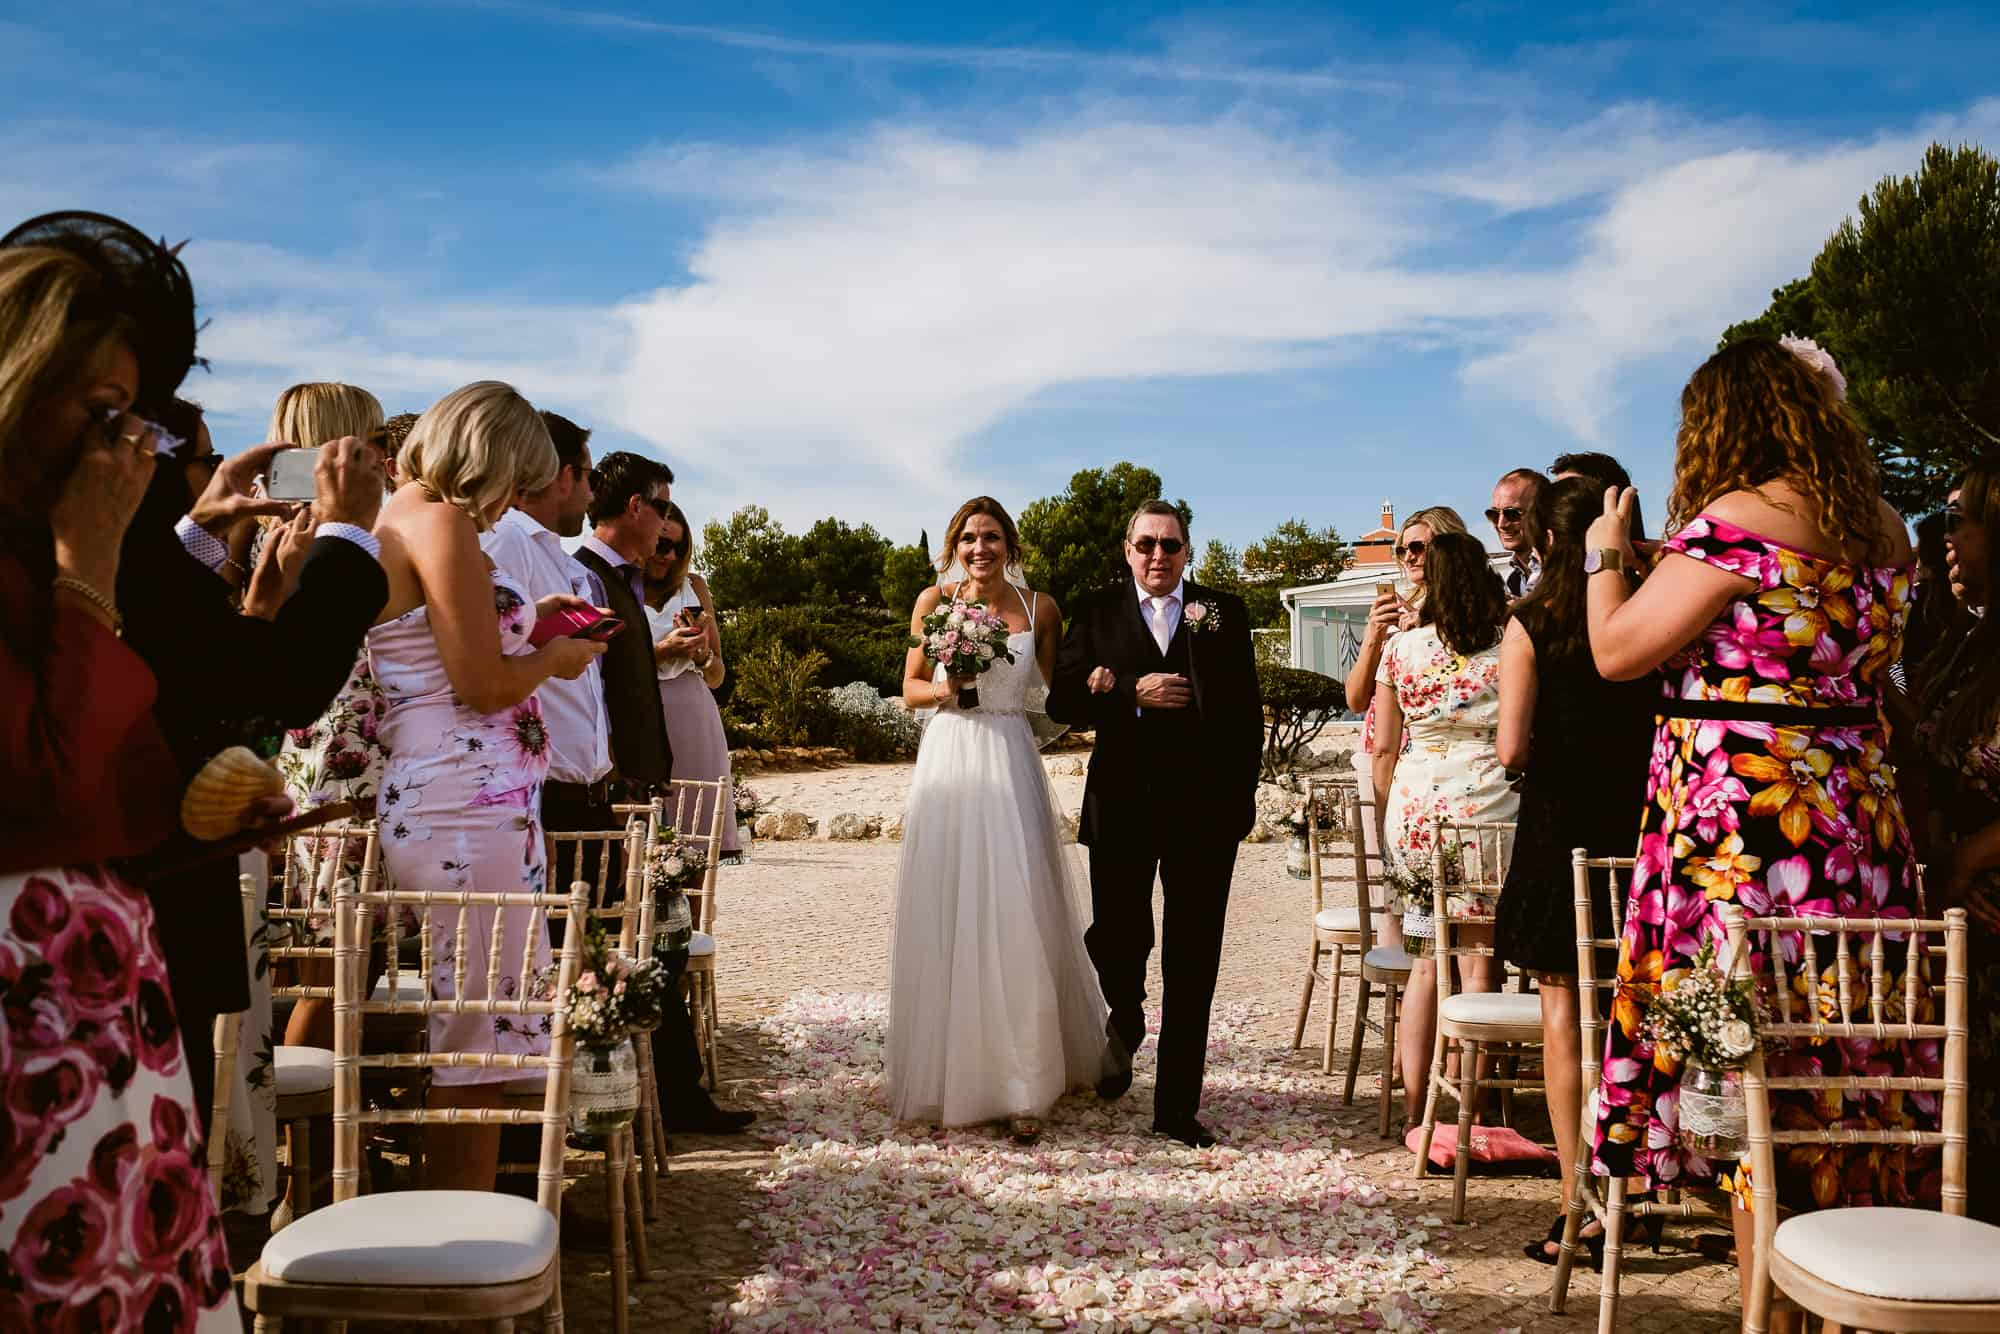 algarve-wedding-photographer-matt-tyler-0033